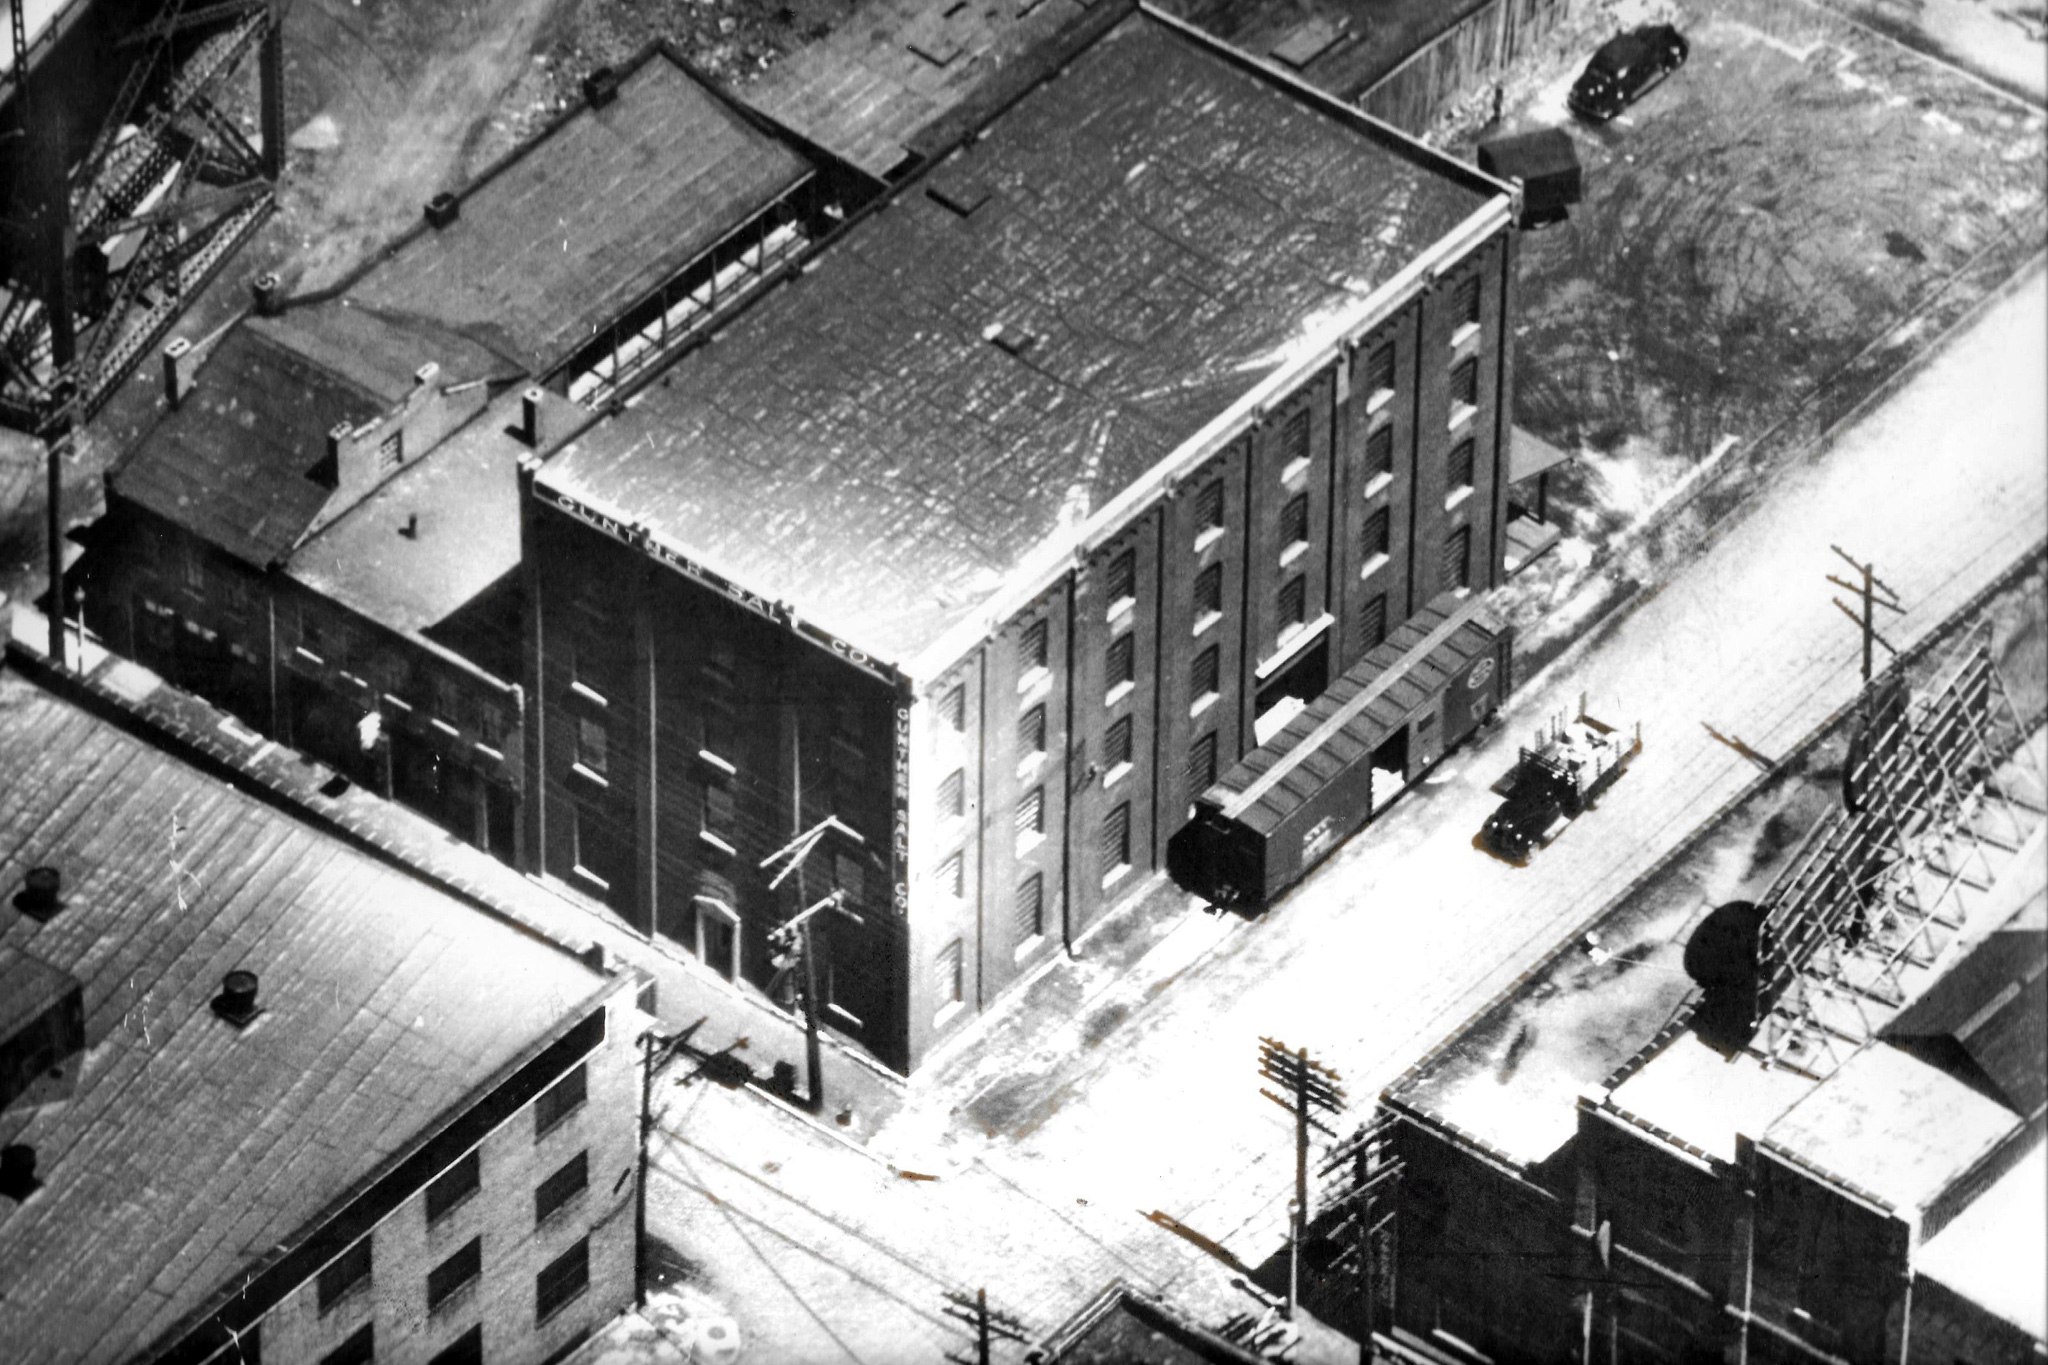 For most of it's history, Gunther Salt Company was located at 2nd Street and Chouteau Avenue near the south leg of the Gateway Arch. These buildings are still standing.